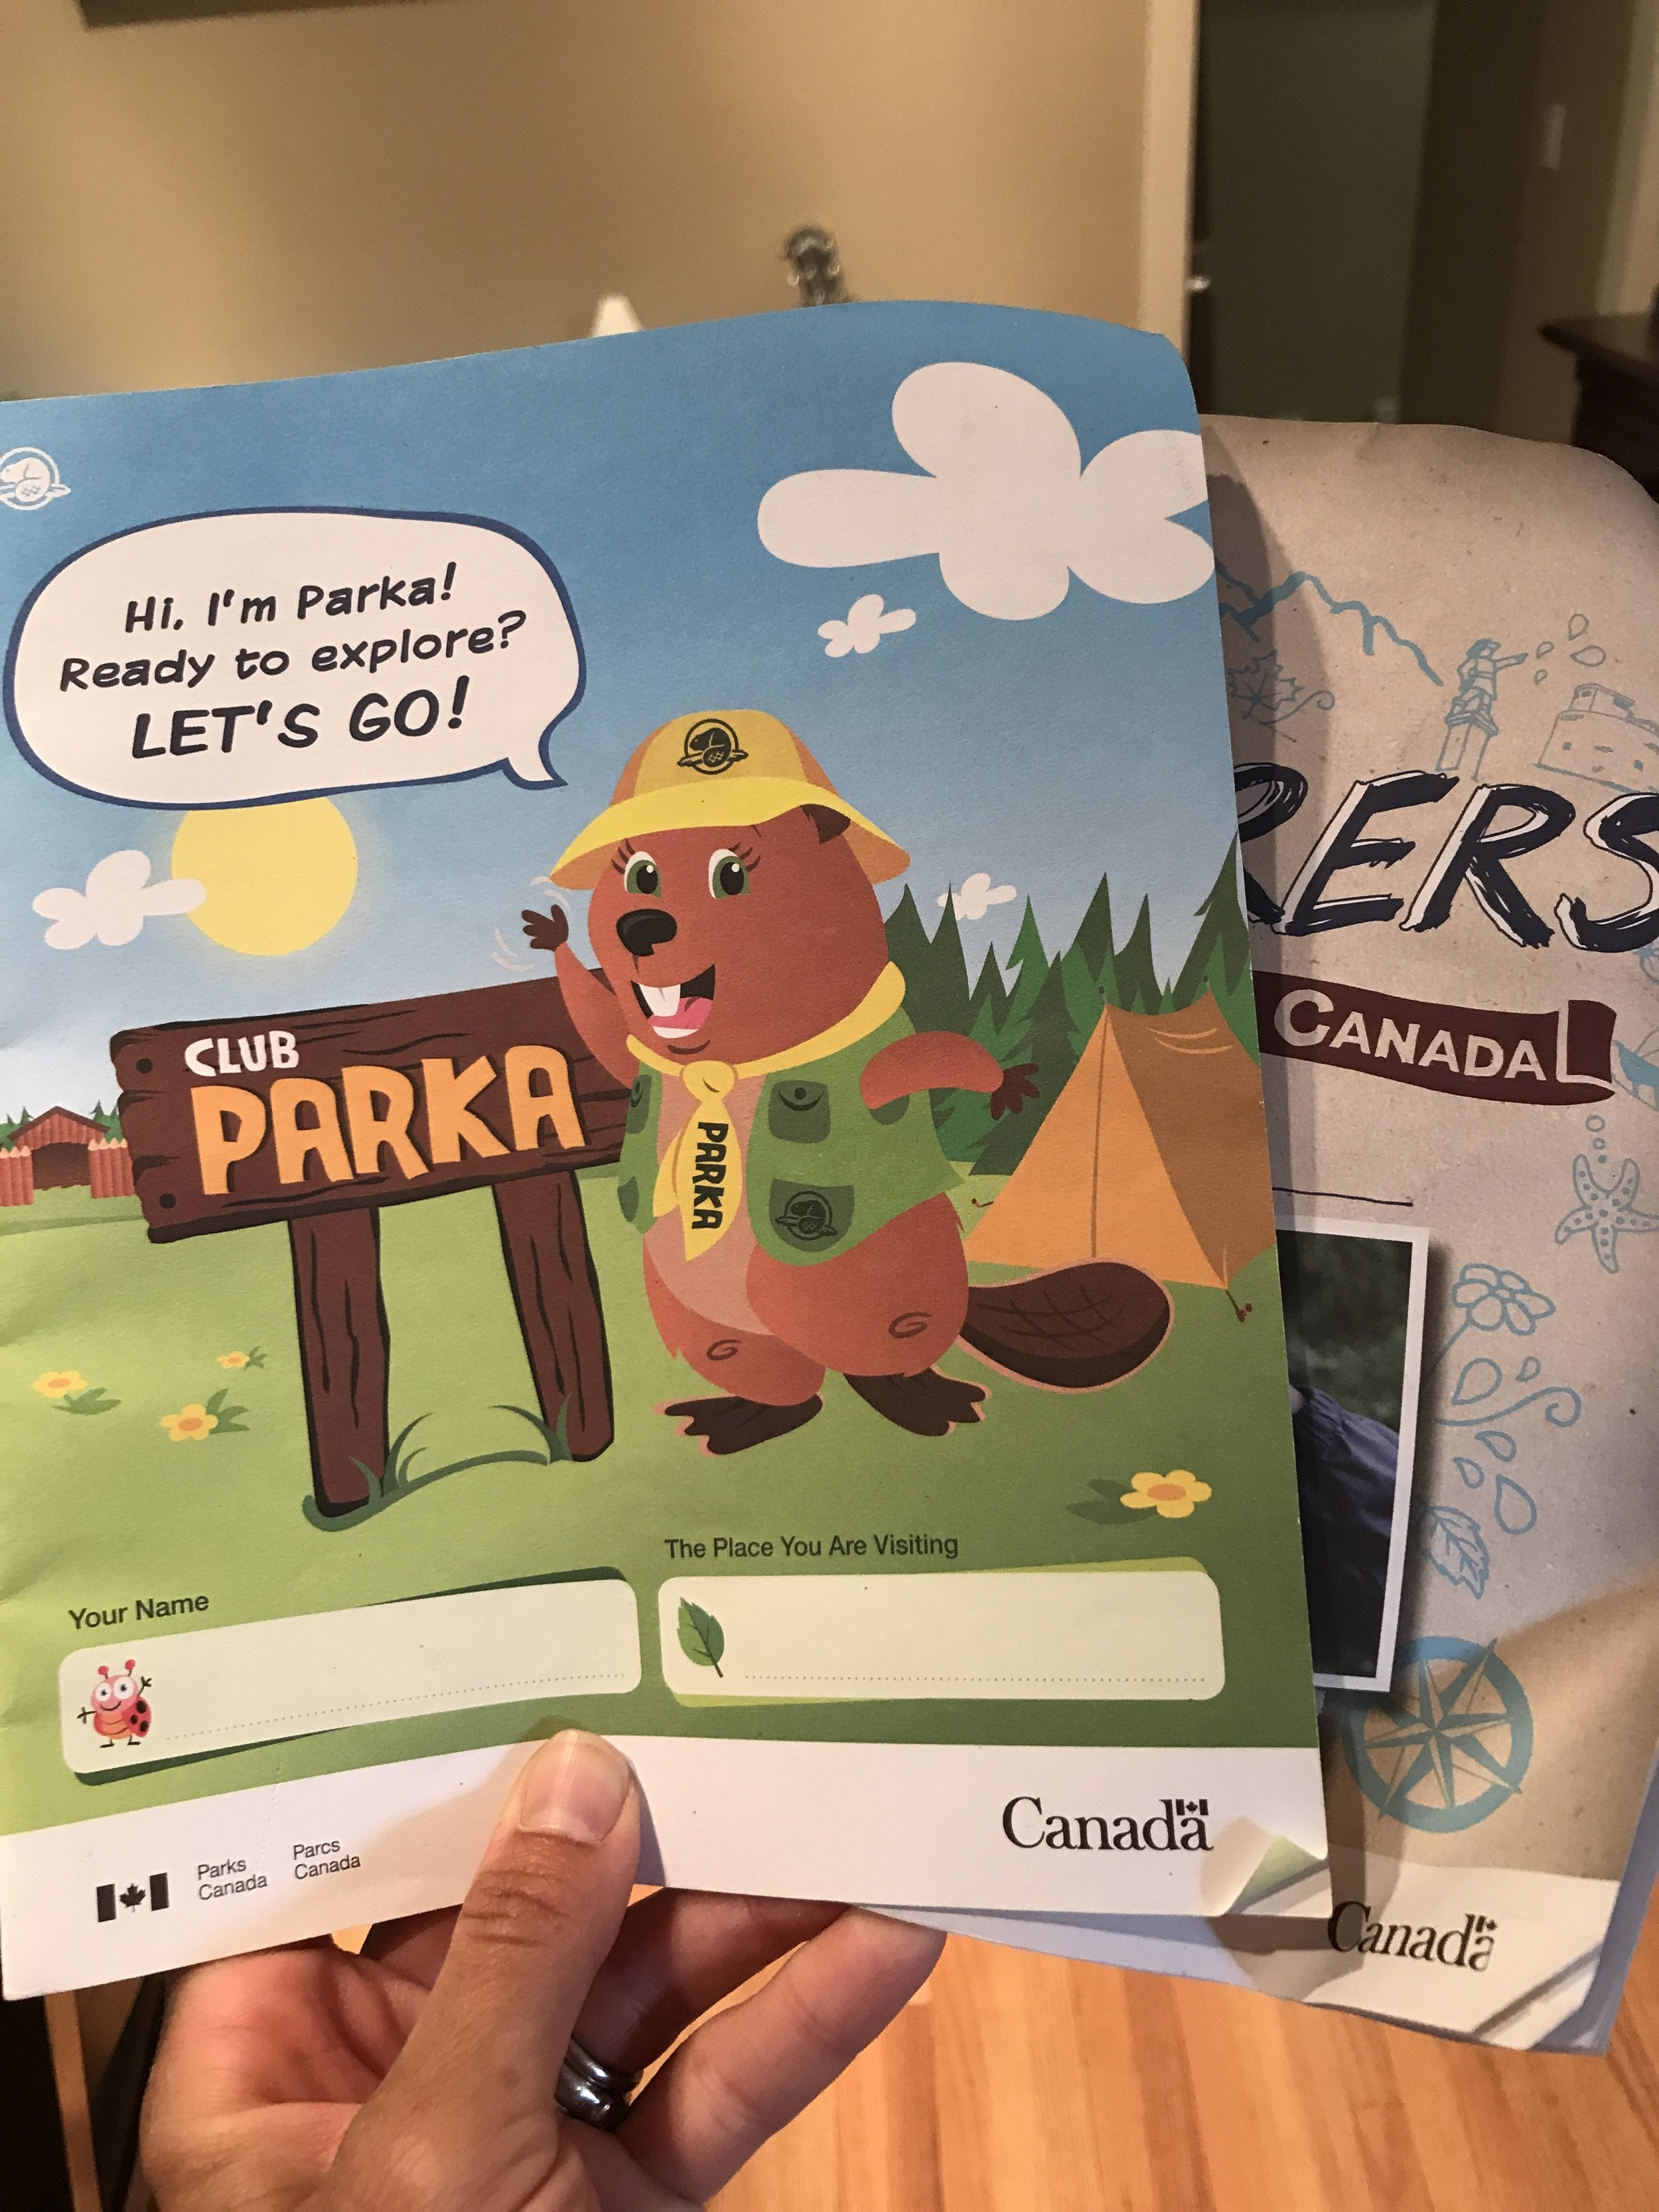 Parks Canada booklets for kids are available at all National Parks. Parka is the beaver mascot.